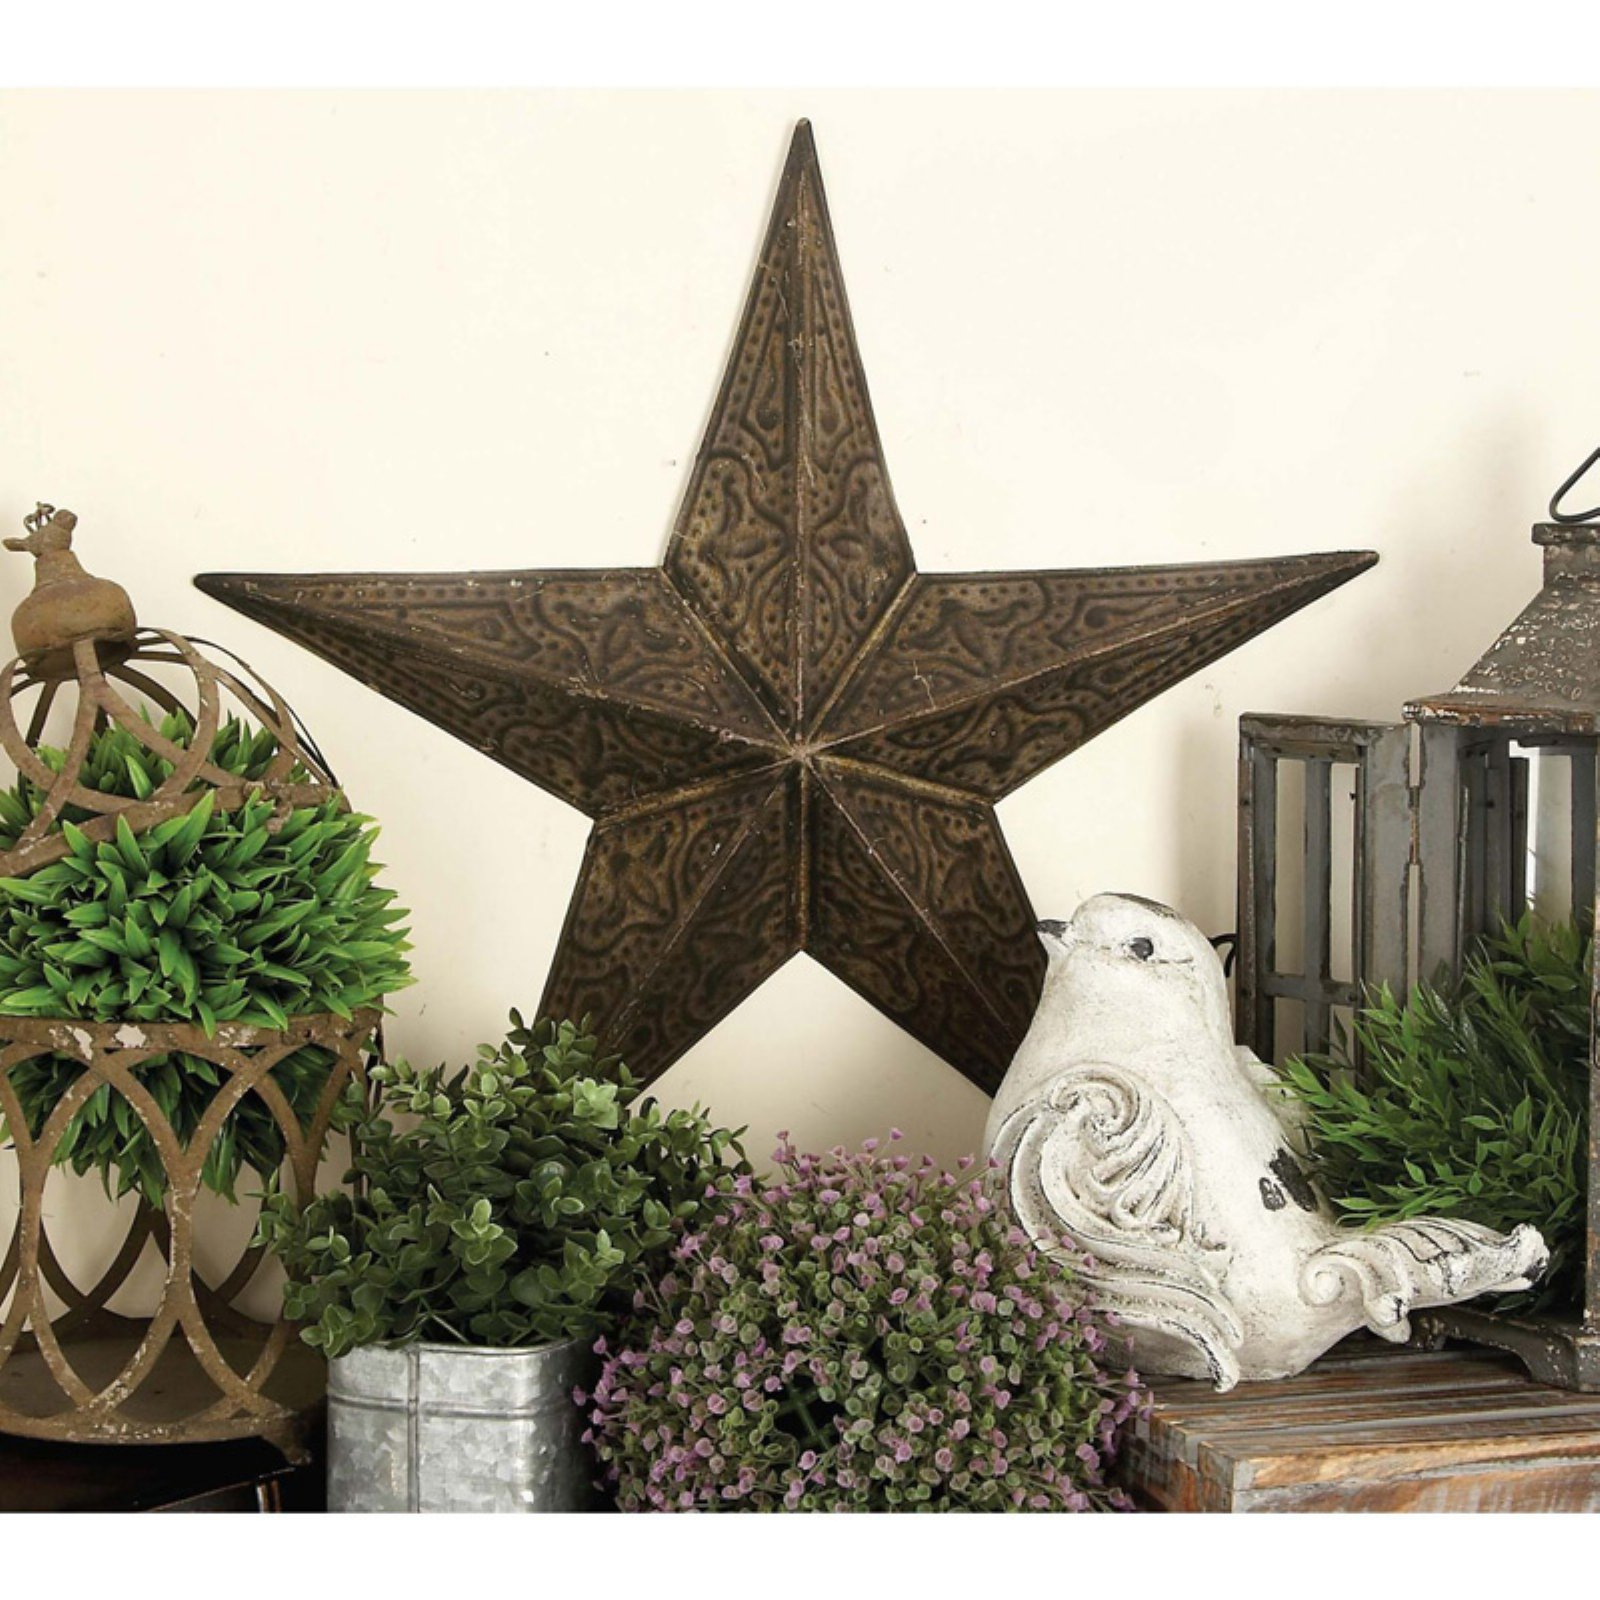 Decor Regarding Most Popular 3 Piece Star Wall Decor Sets (View 5 of 20)